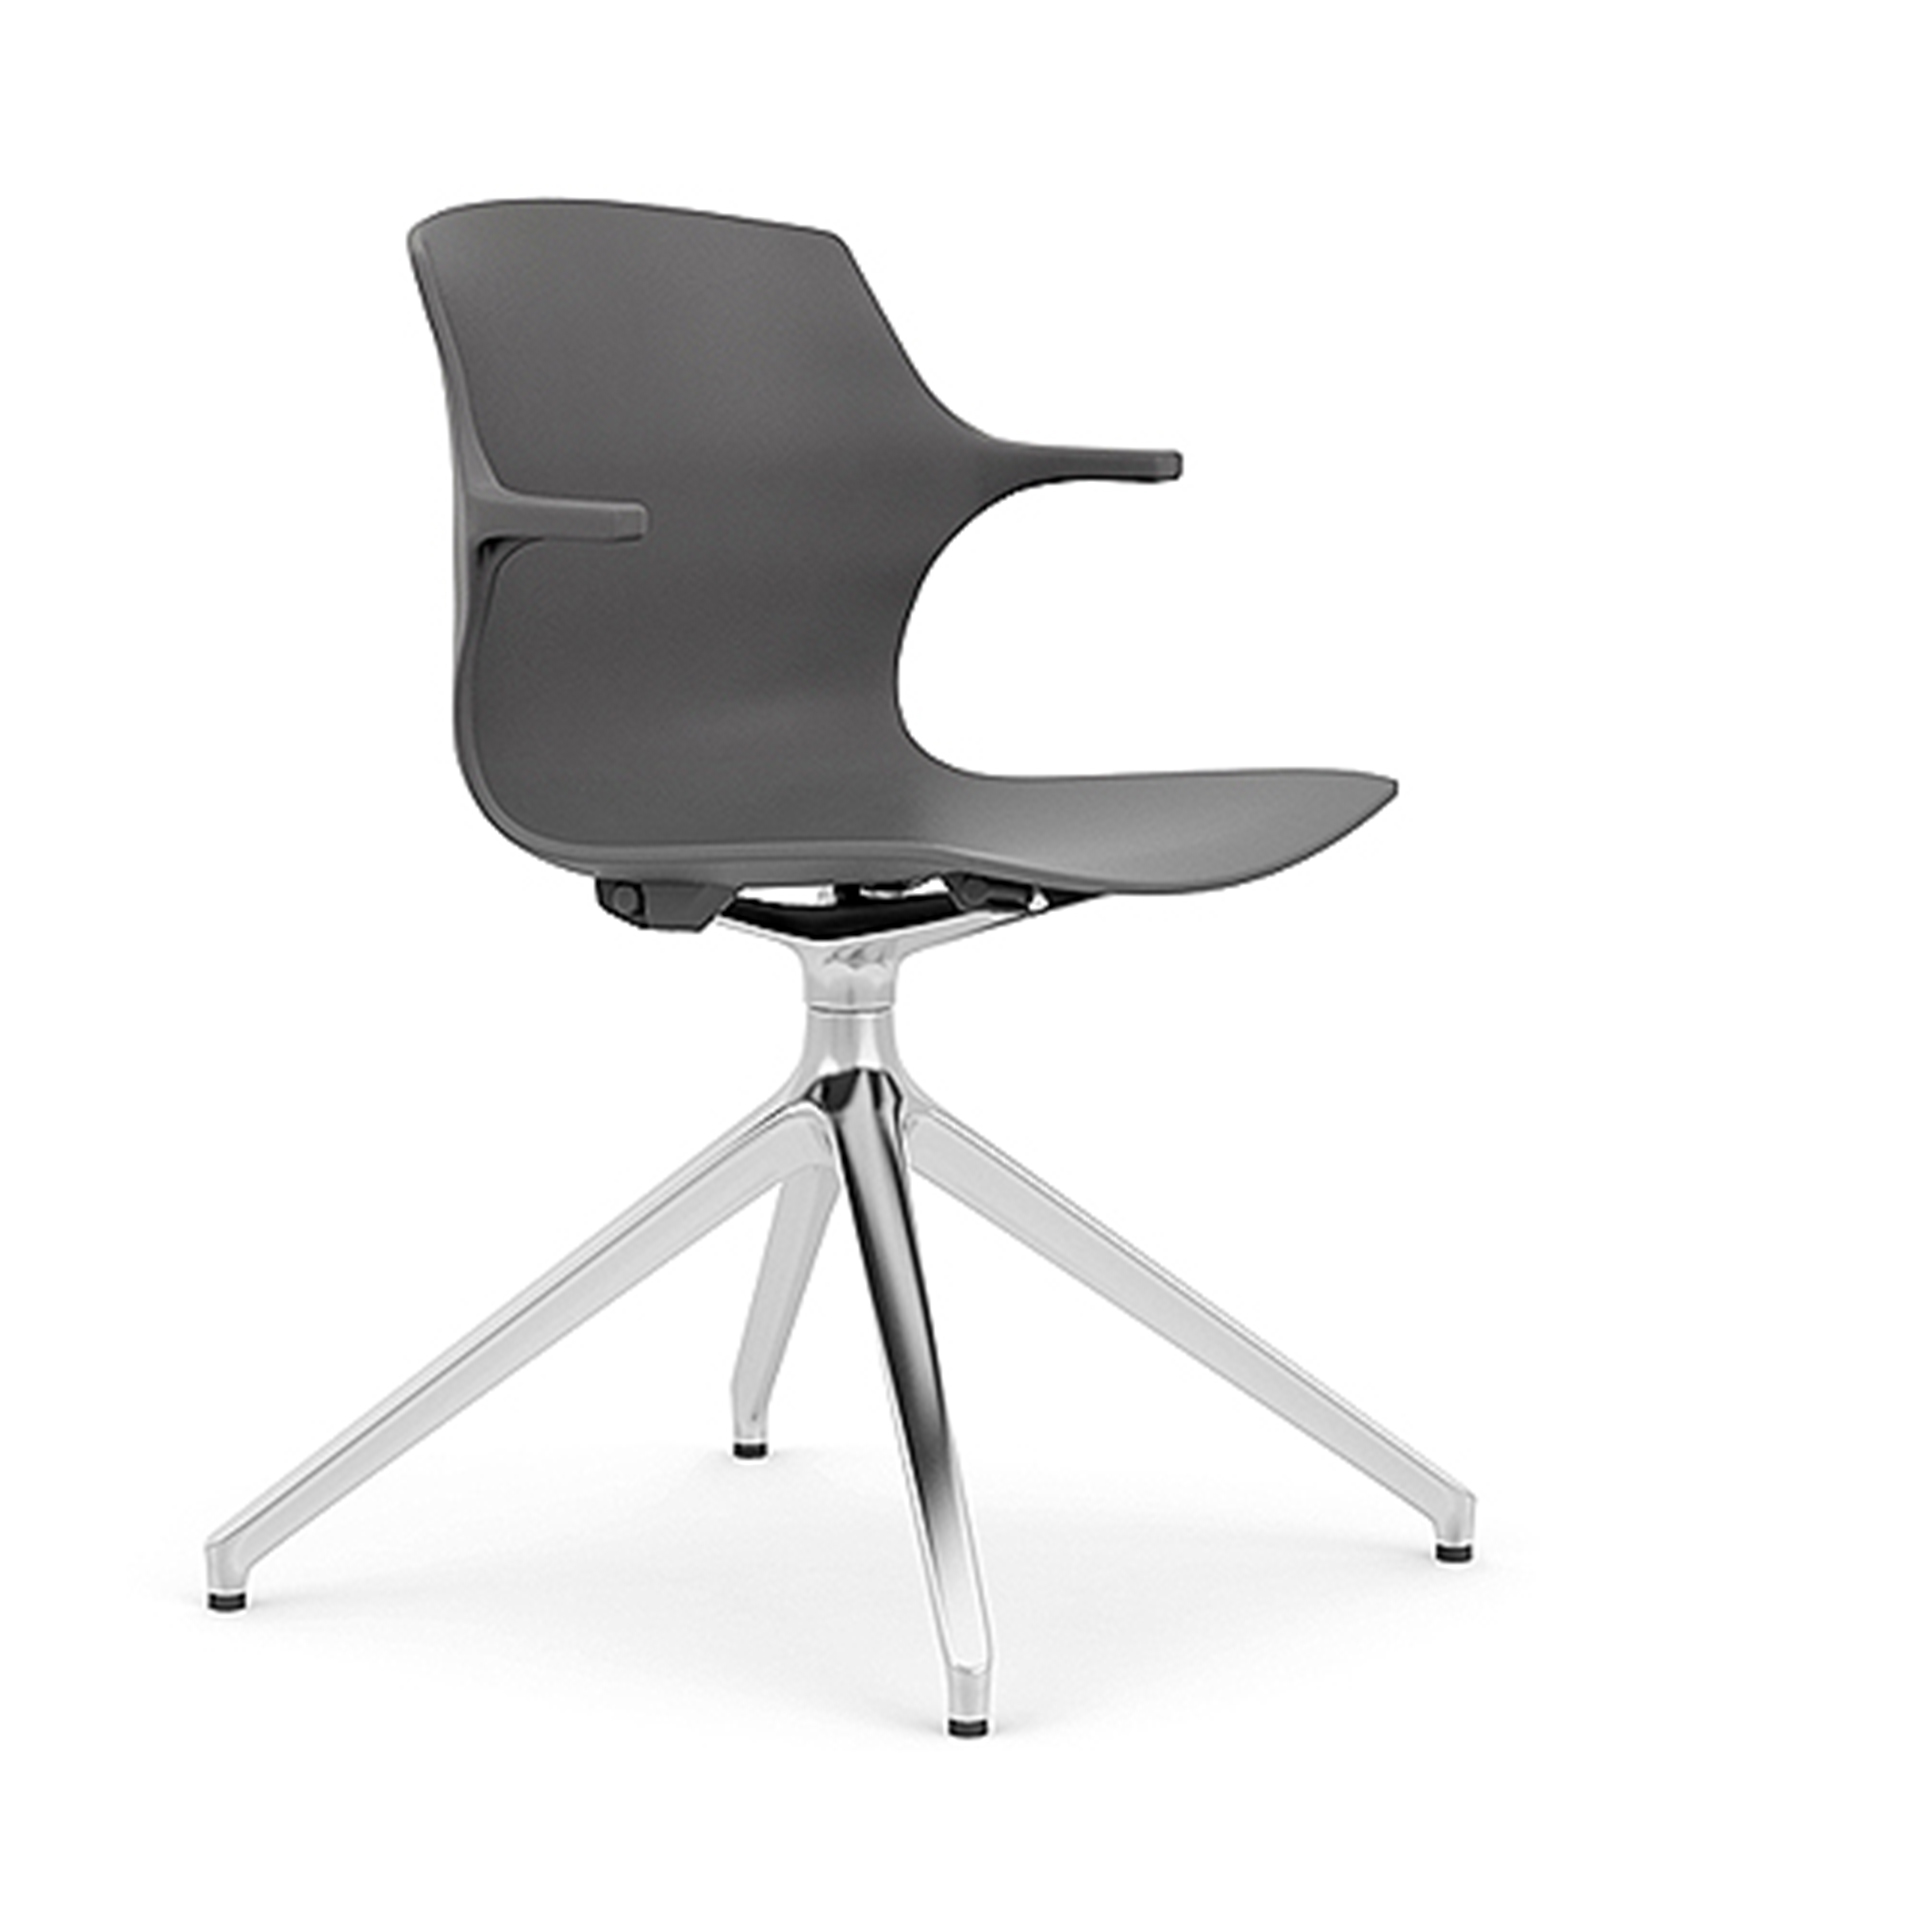 Swivel Chair with arms